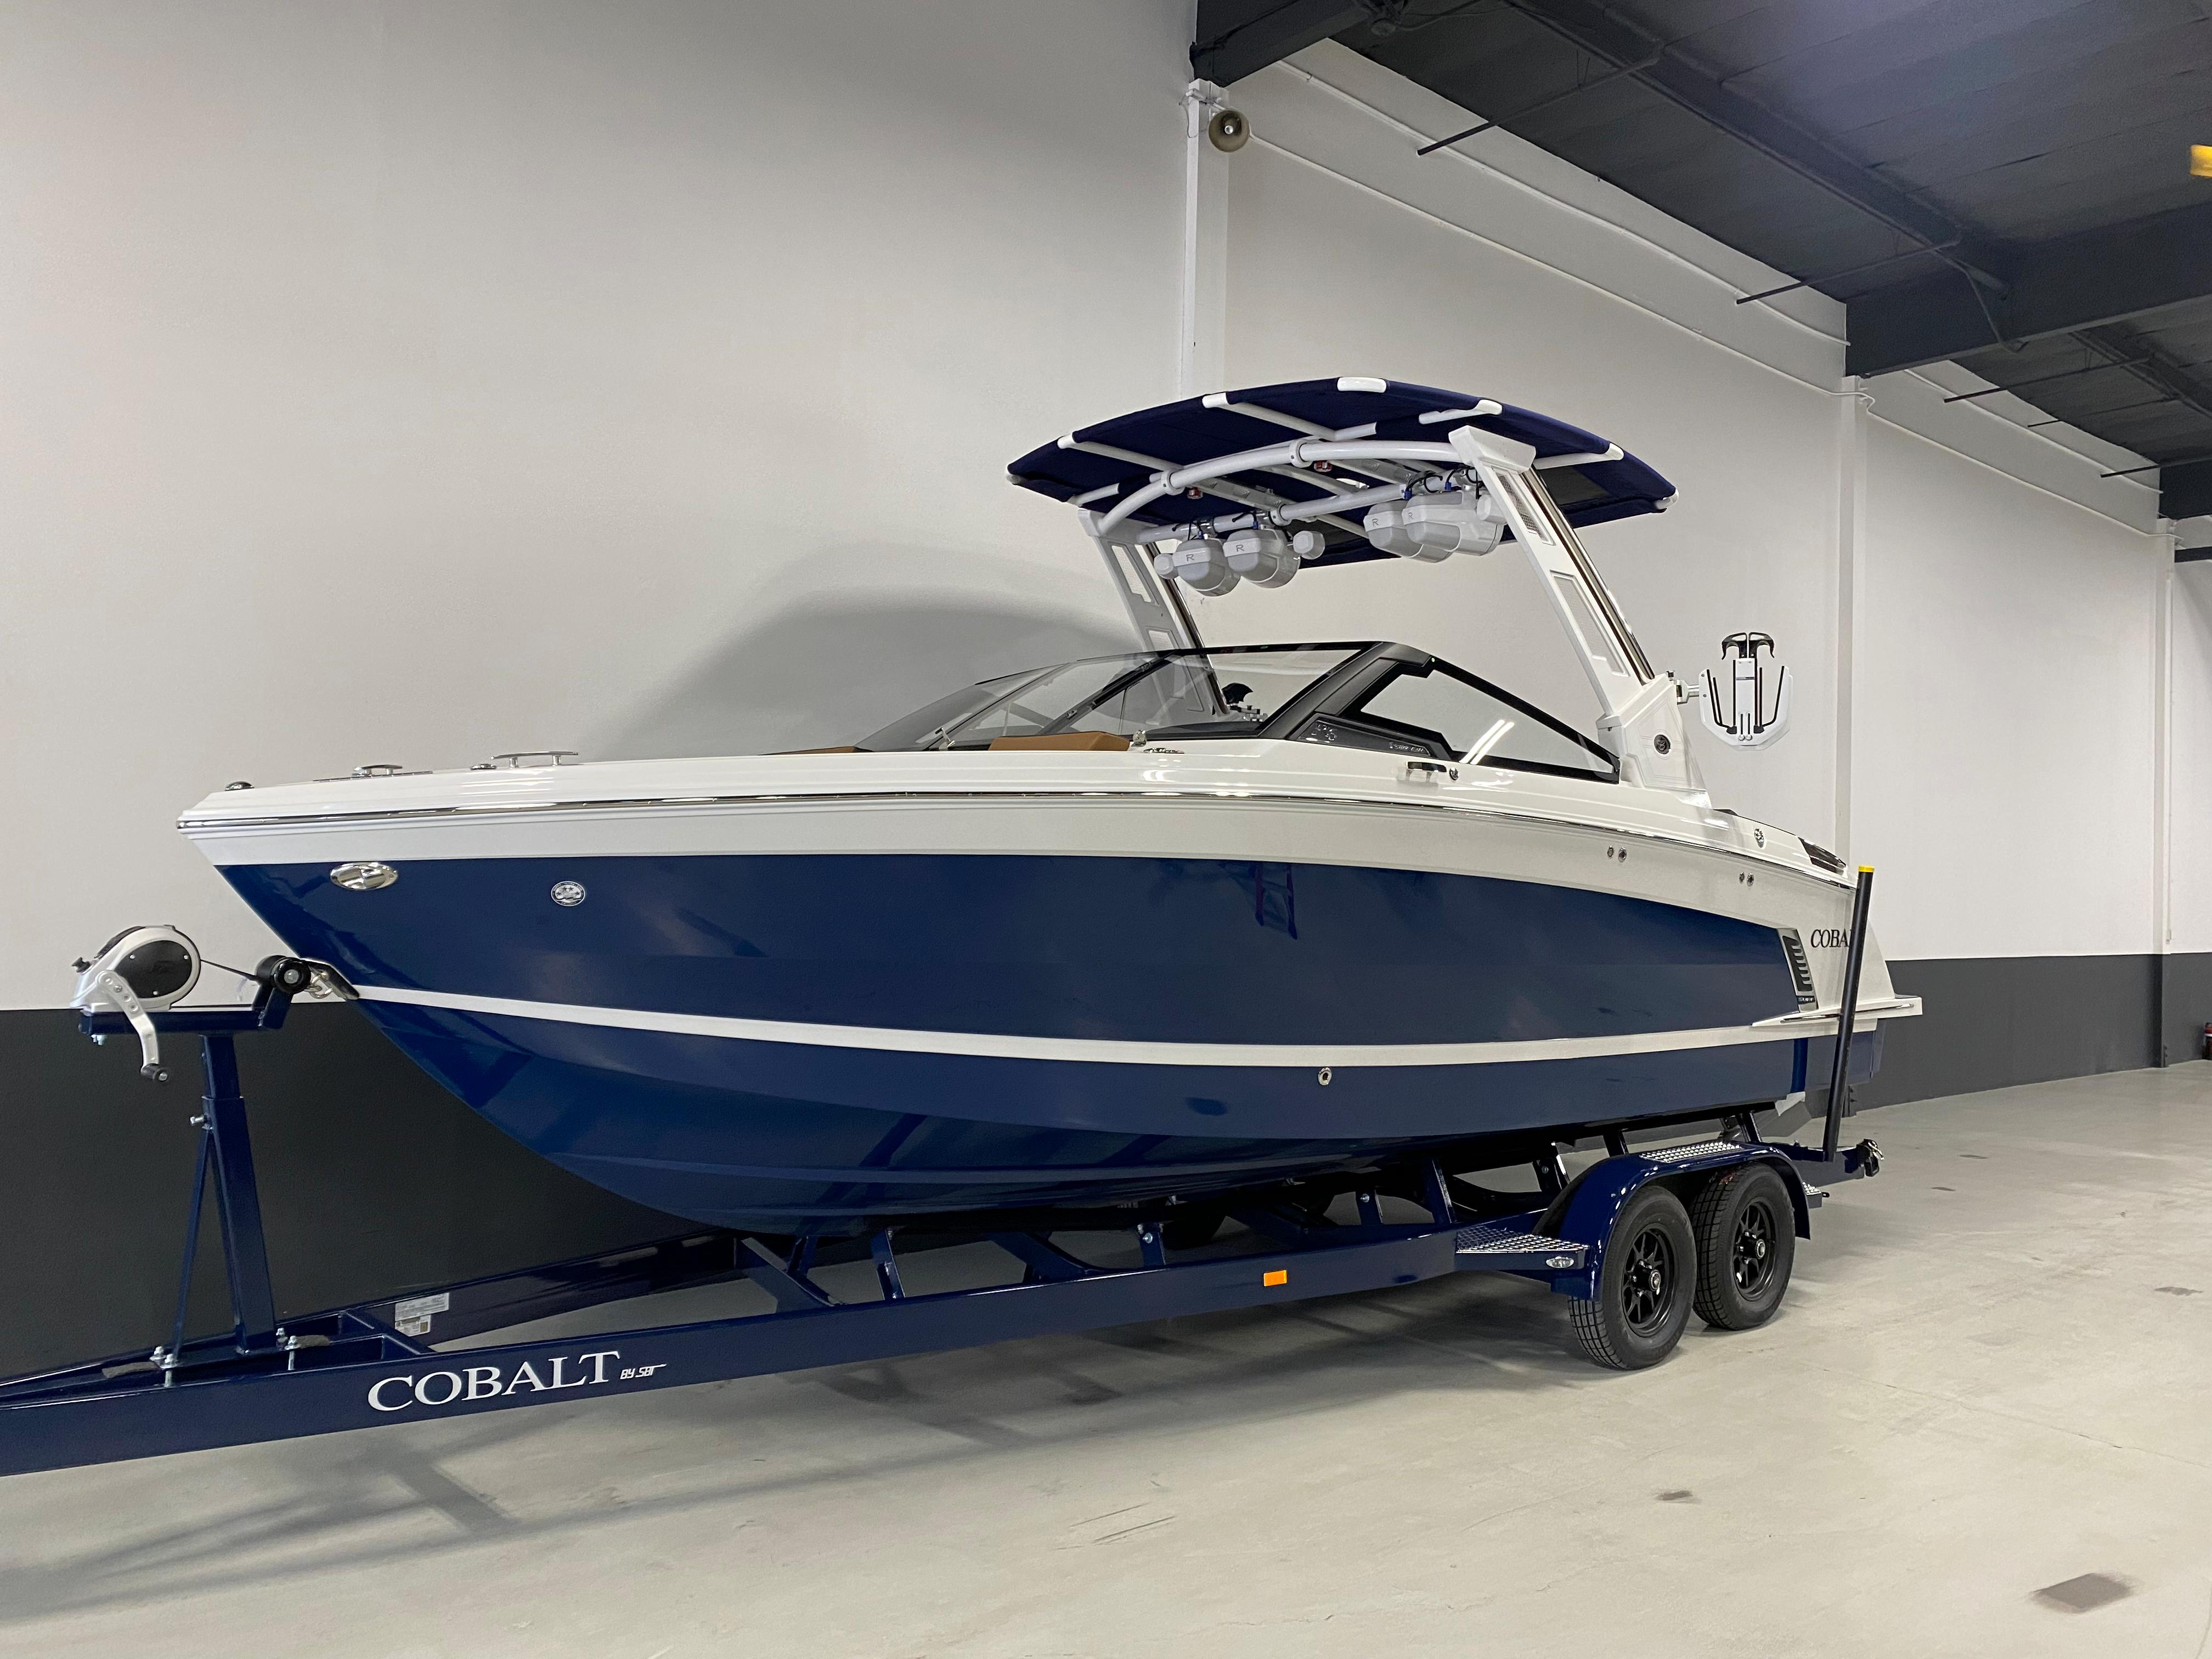 2022 Cobalt R6 Surf #C6015G inventory image at Sun Country Inland in Irvine